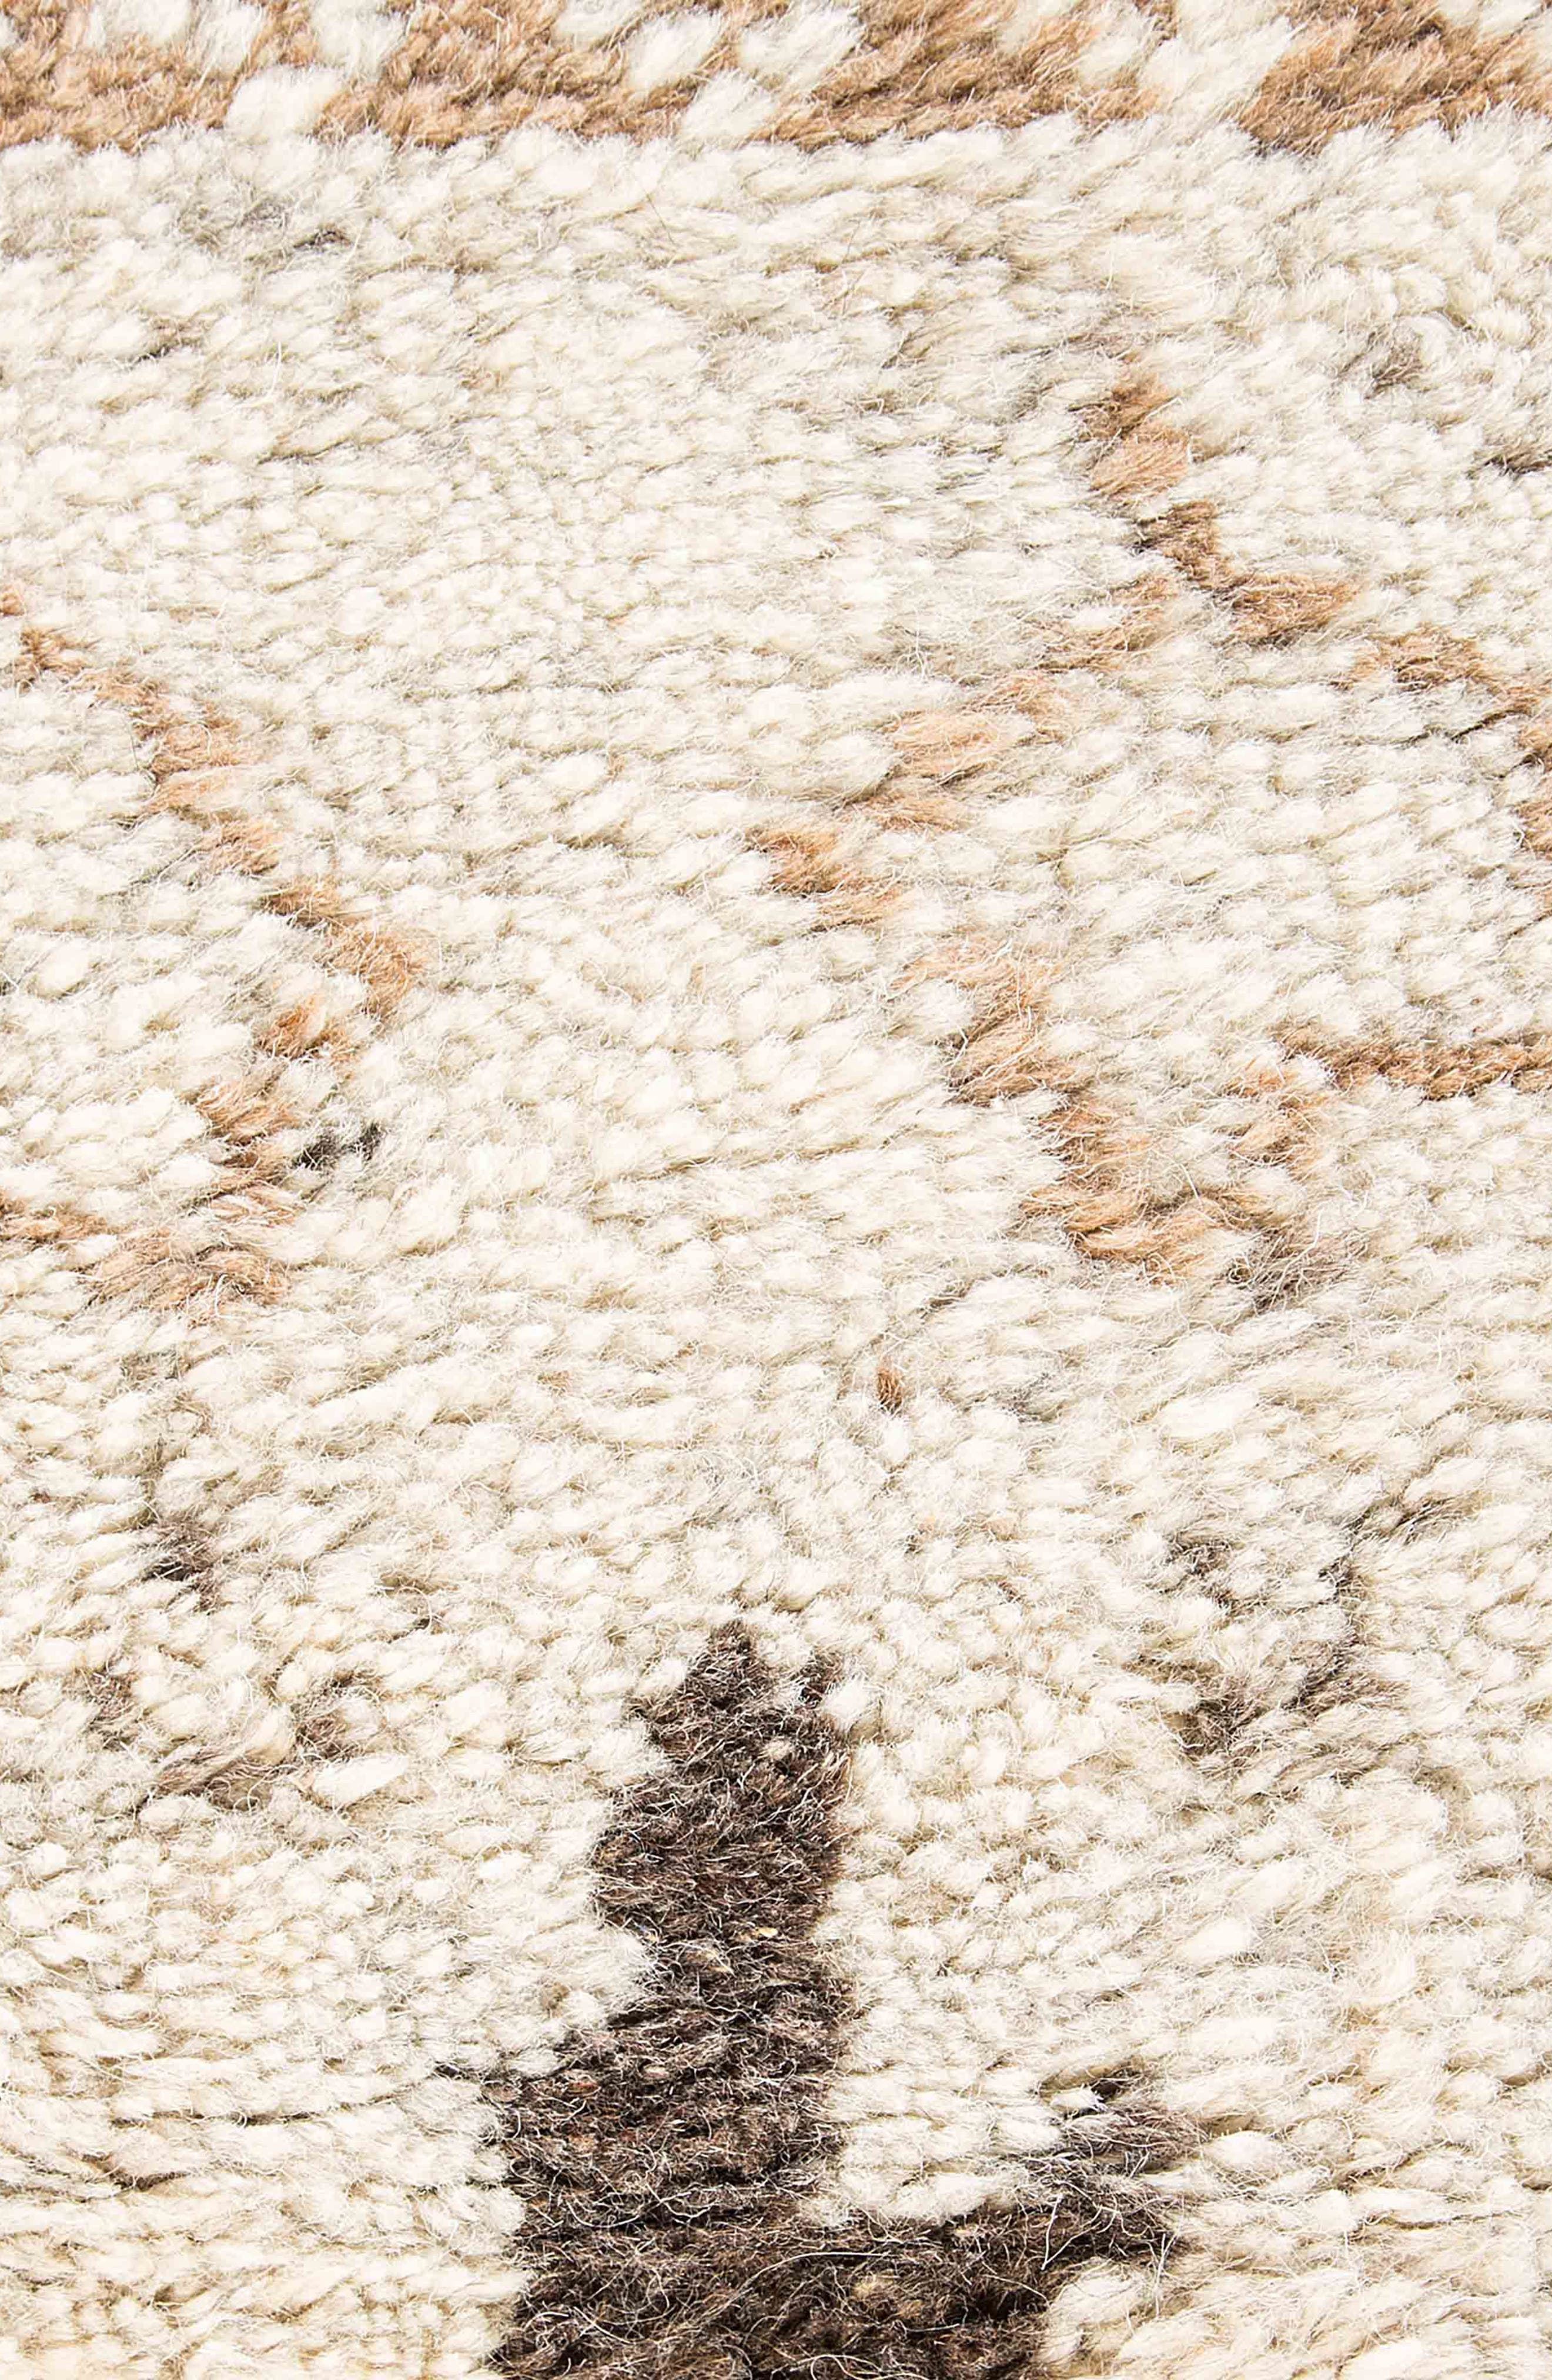 'Zola Zag' Wool Area Rug,                             Alternate thumbnail 4, color,                             IVORY/ TAUPE